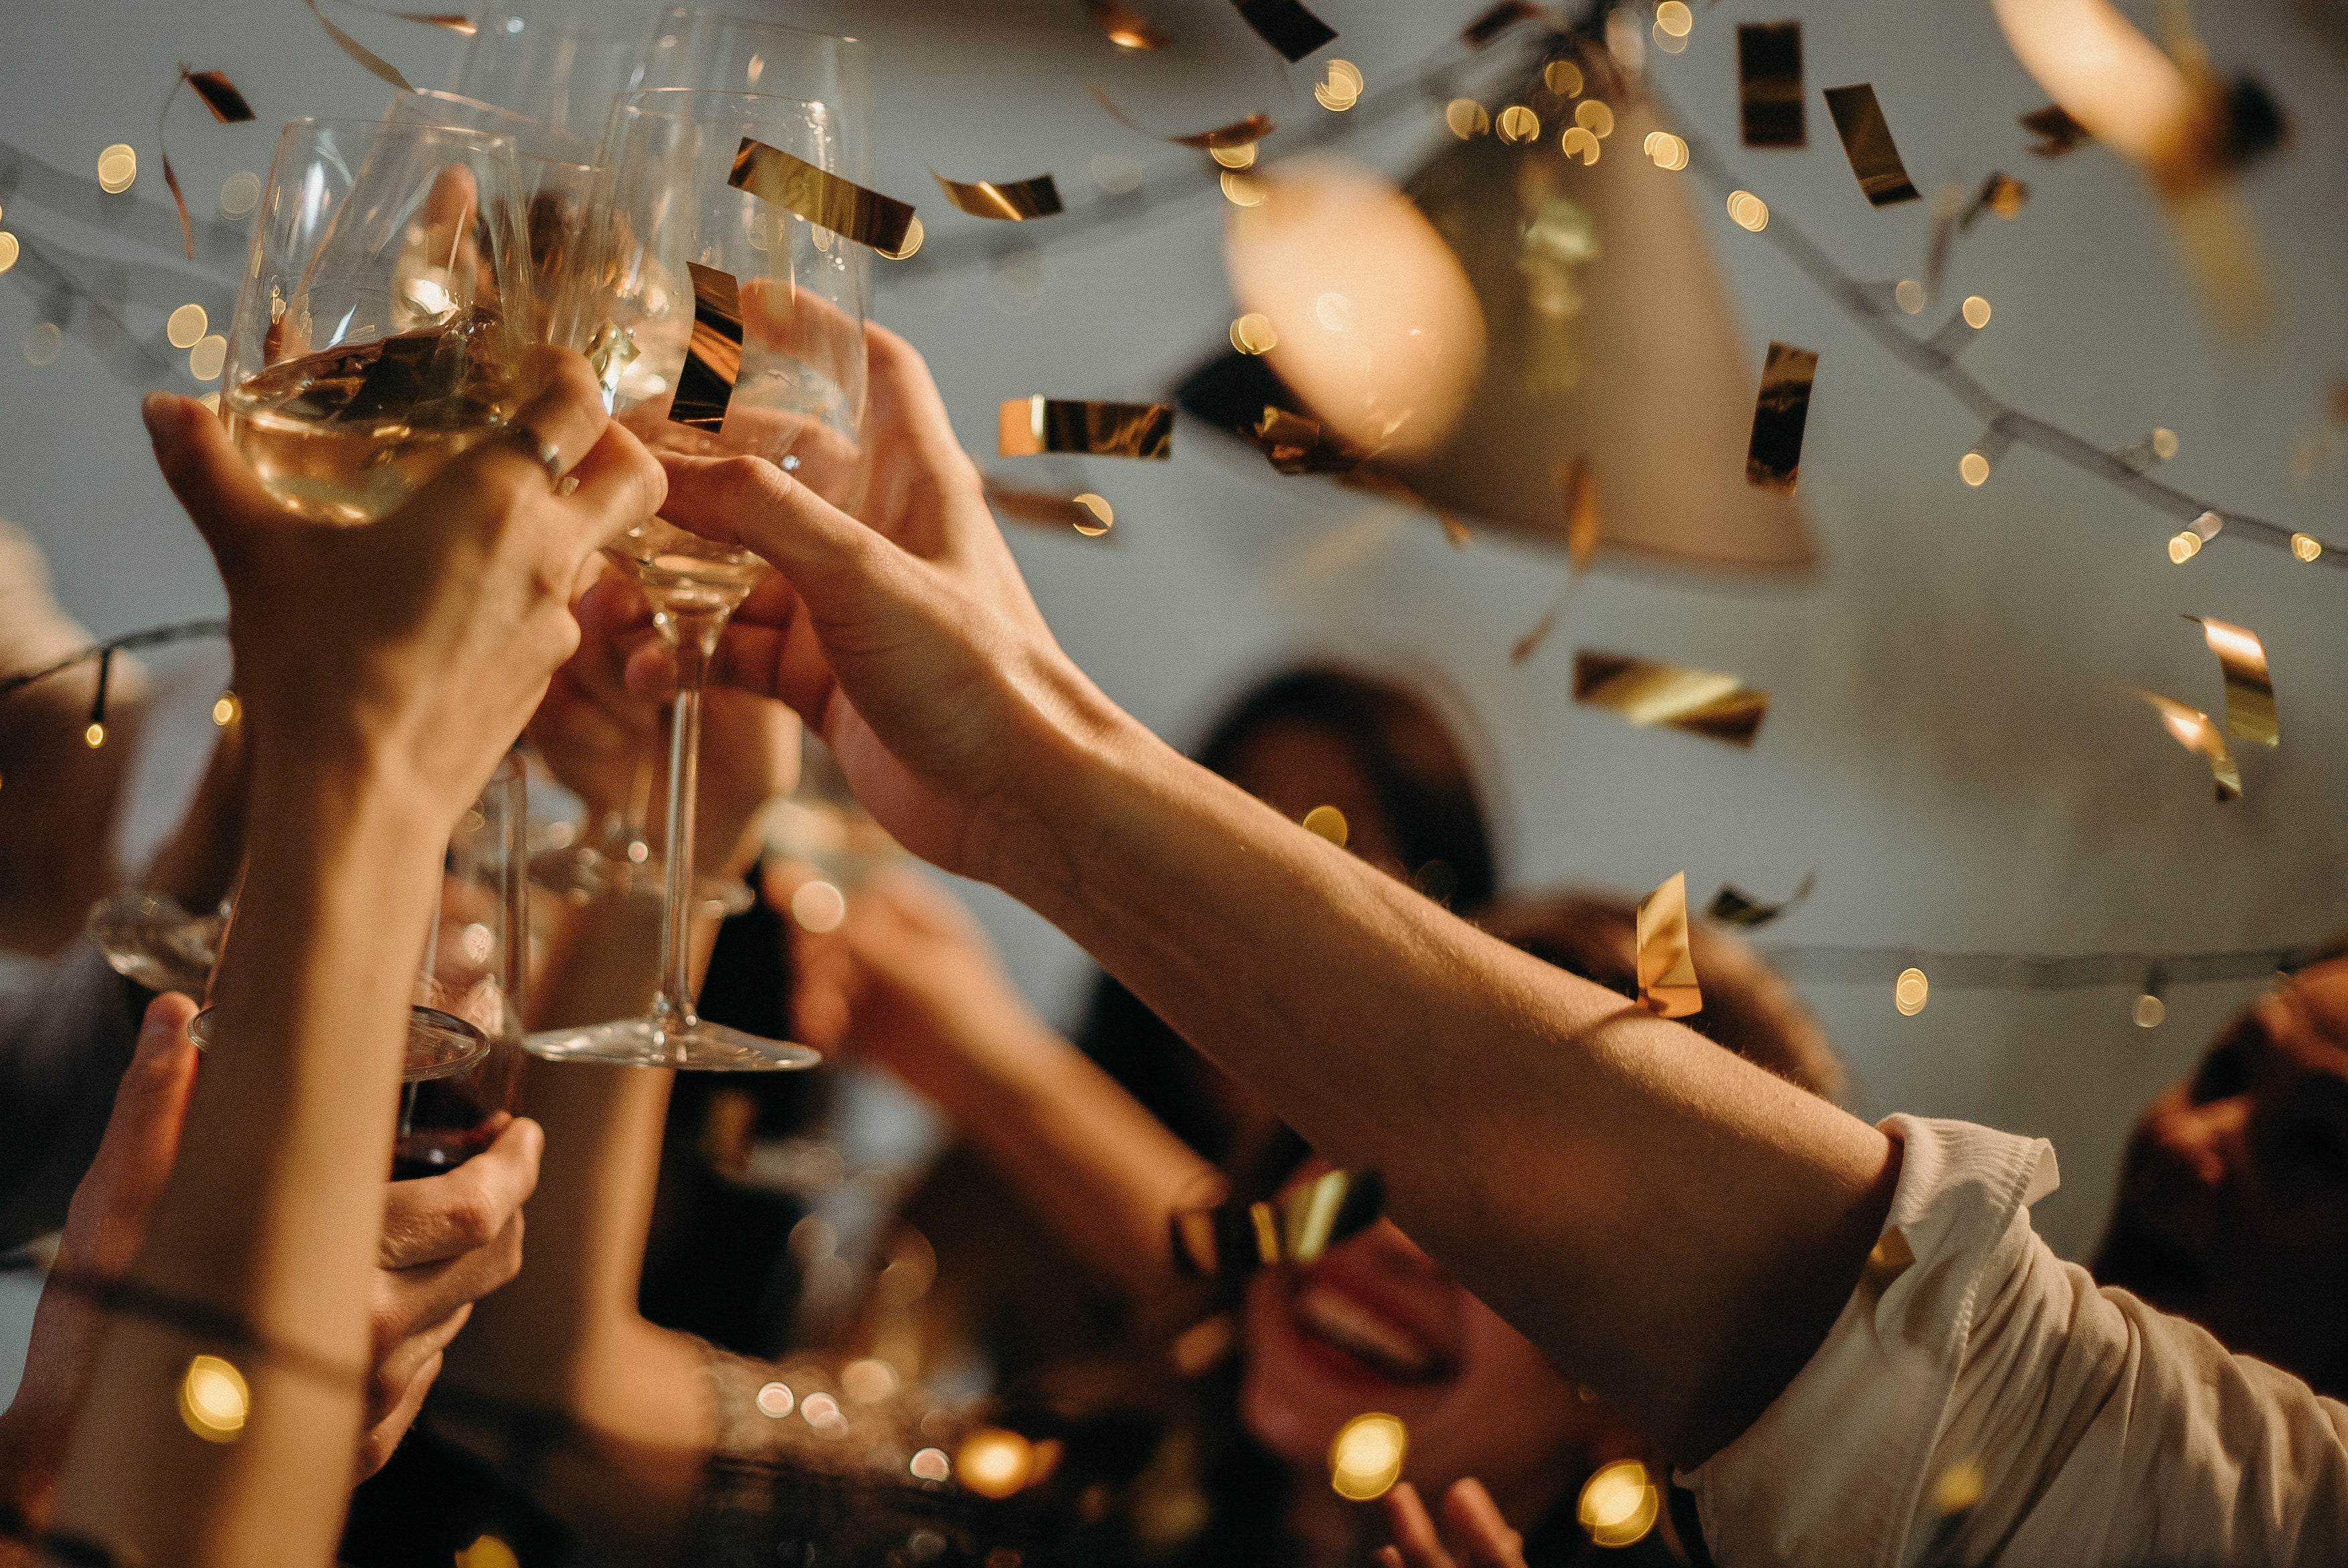 Be merry, not folly: An office Christmas party checklist for employers